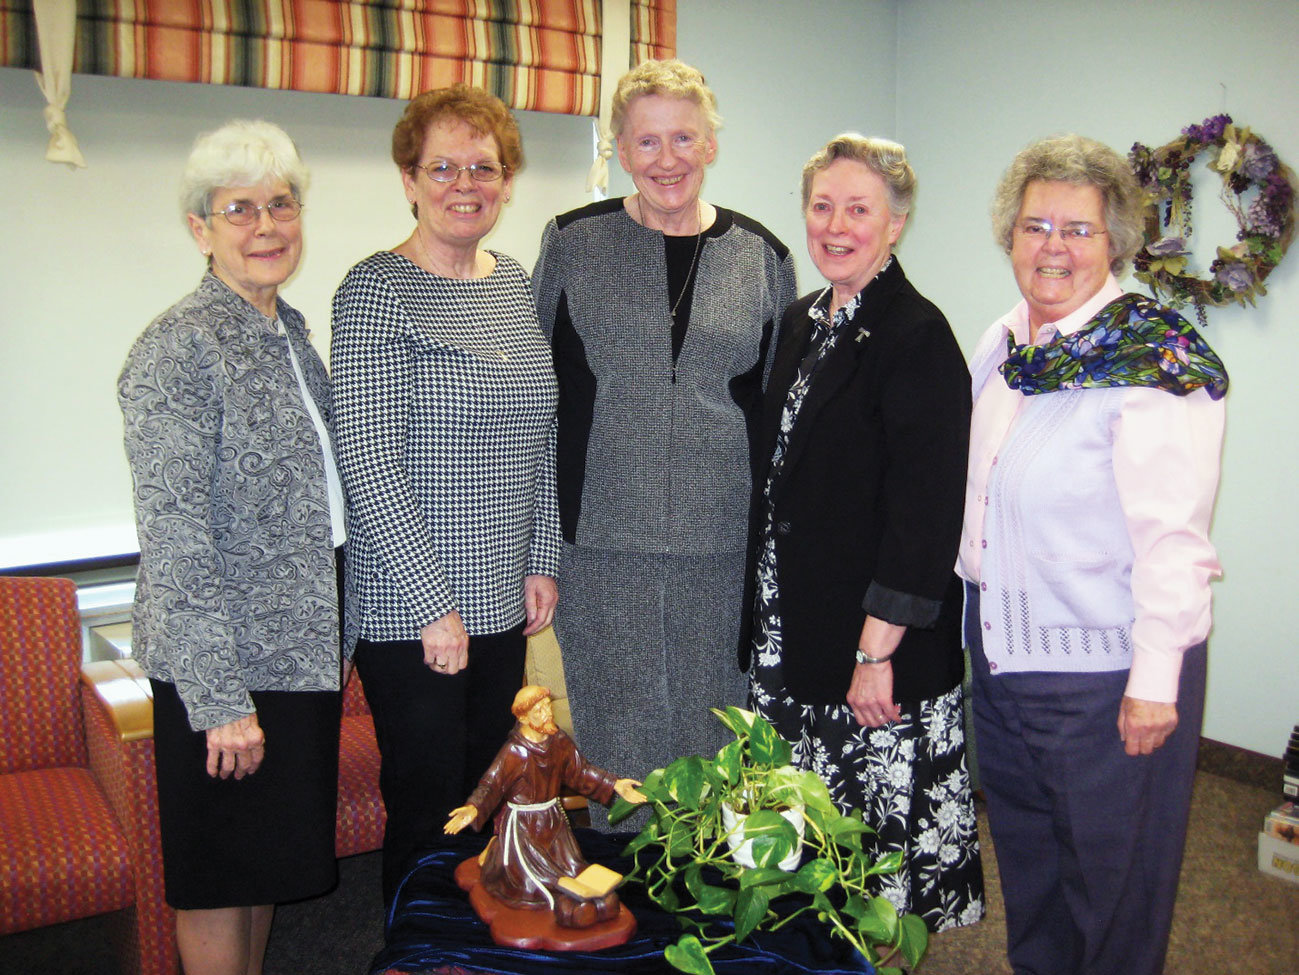 ELECTED LEADERS—Sister Regina Holtz, F.S.P.; Sister Maureen Colleary, F.S.P.; Sister Helen Wacker, F.S.P.; Sister Dorothy DeYoung, F.S.P.; and Sister Jeanne Gilligan, F.S.P., were elected to the Franciscan Sisters of Peace leadership team at the Ninth General Chapter Elections at Marian Woods in Hartsdale April 6.